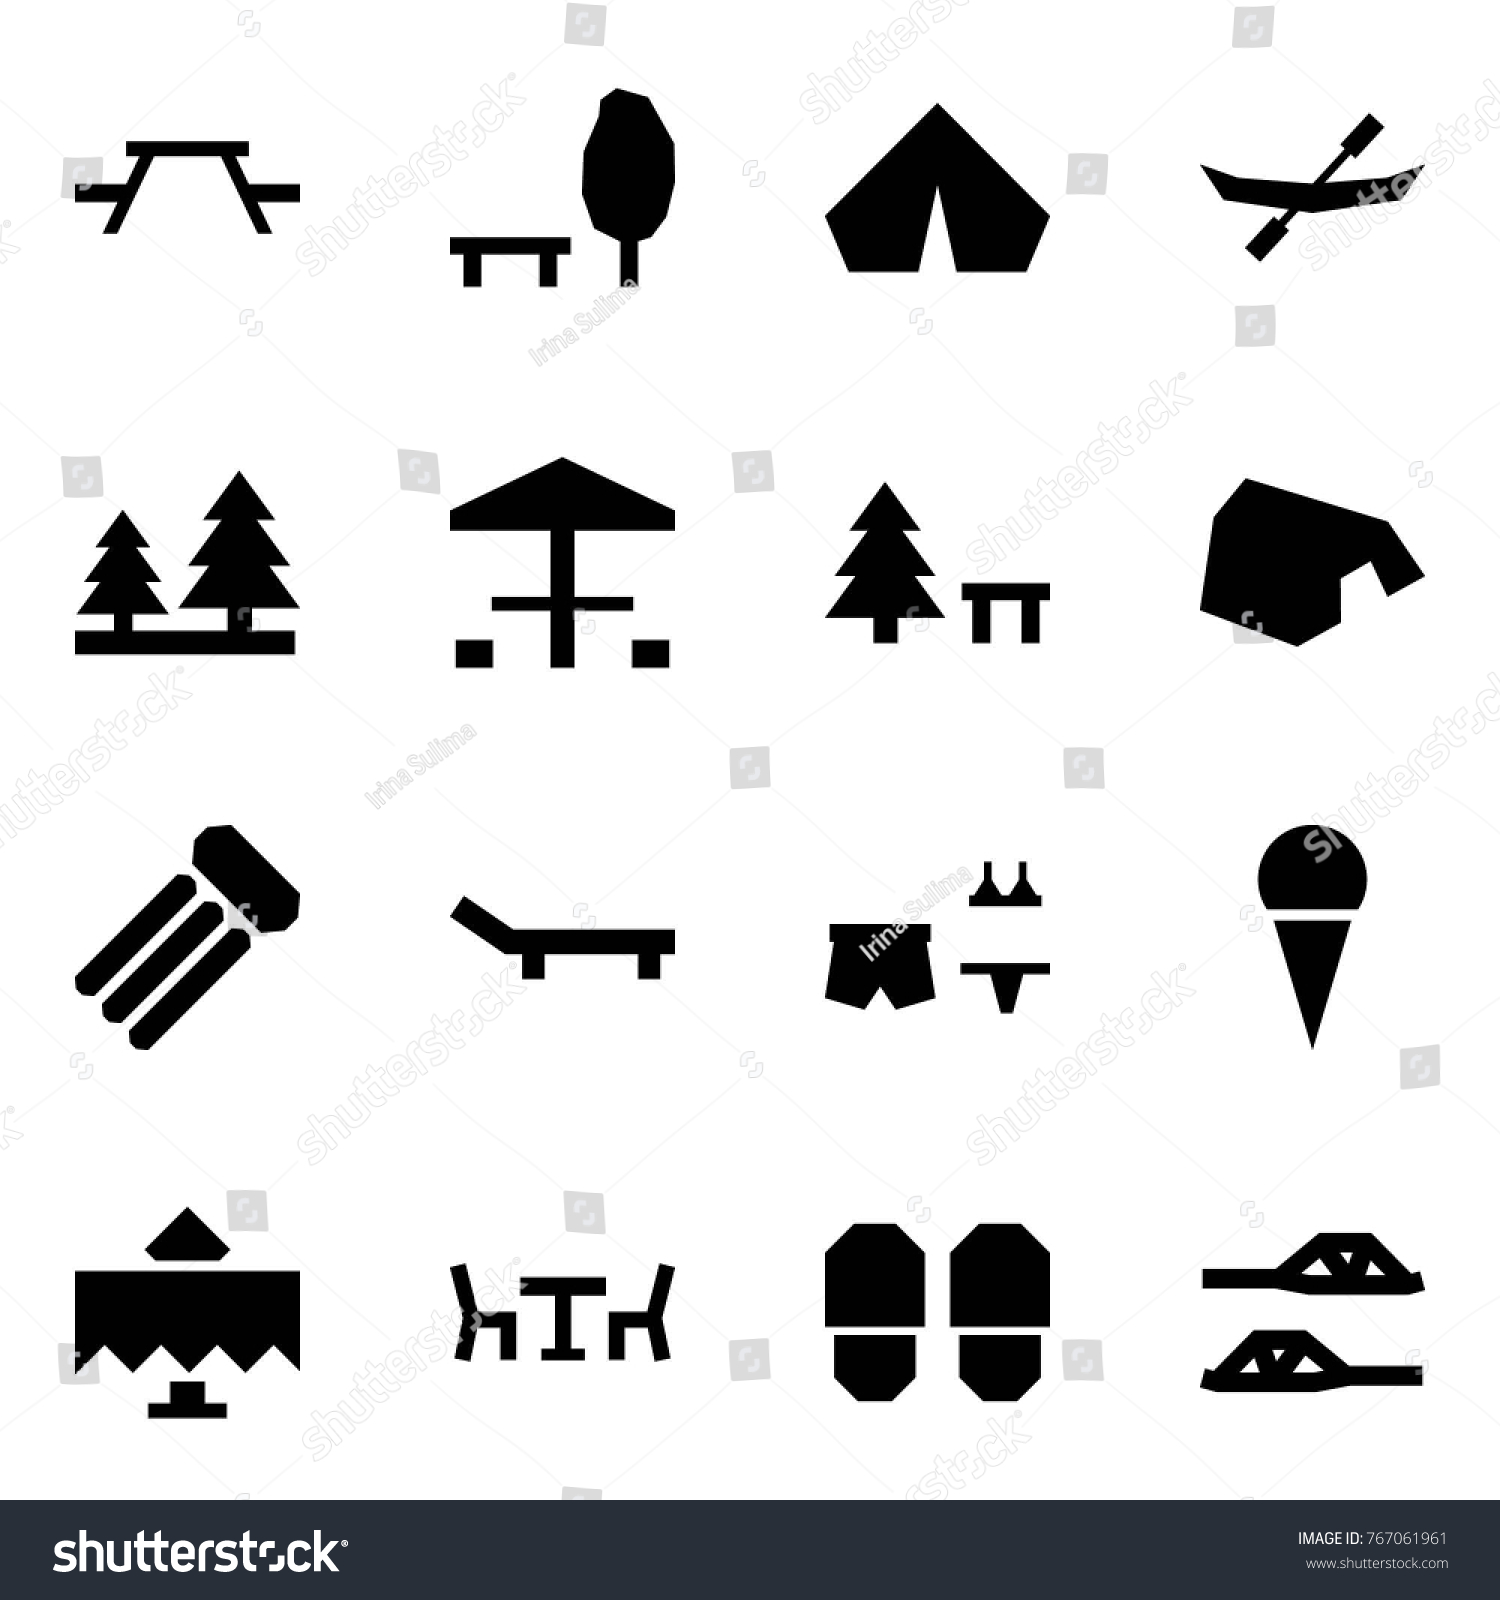 Origami style icon set picnic table stock vector 767061961 origami style icon set picnic table vector park tent canoe forest biocorpaavc